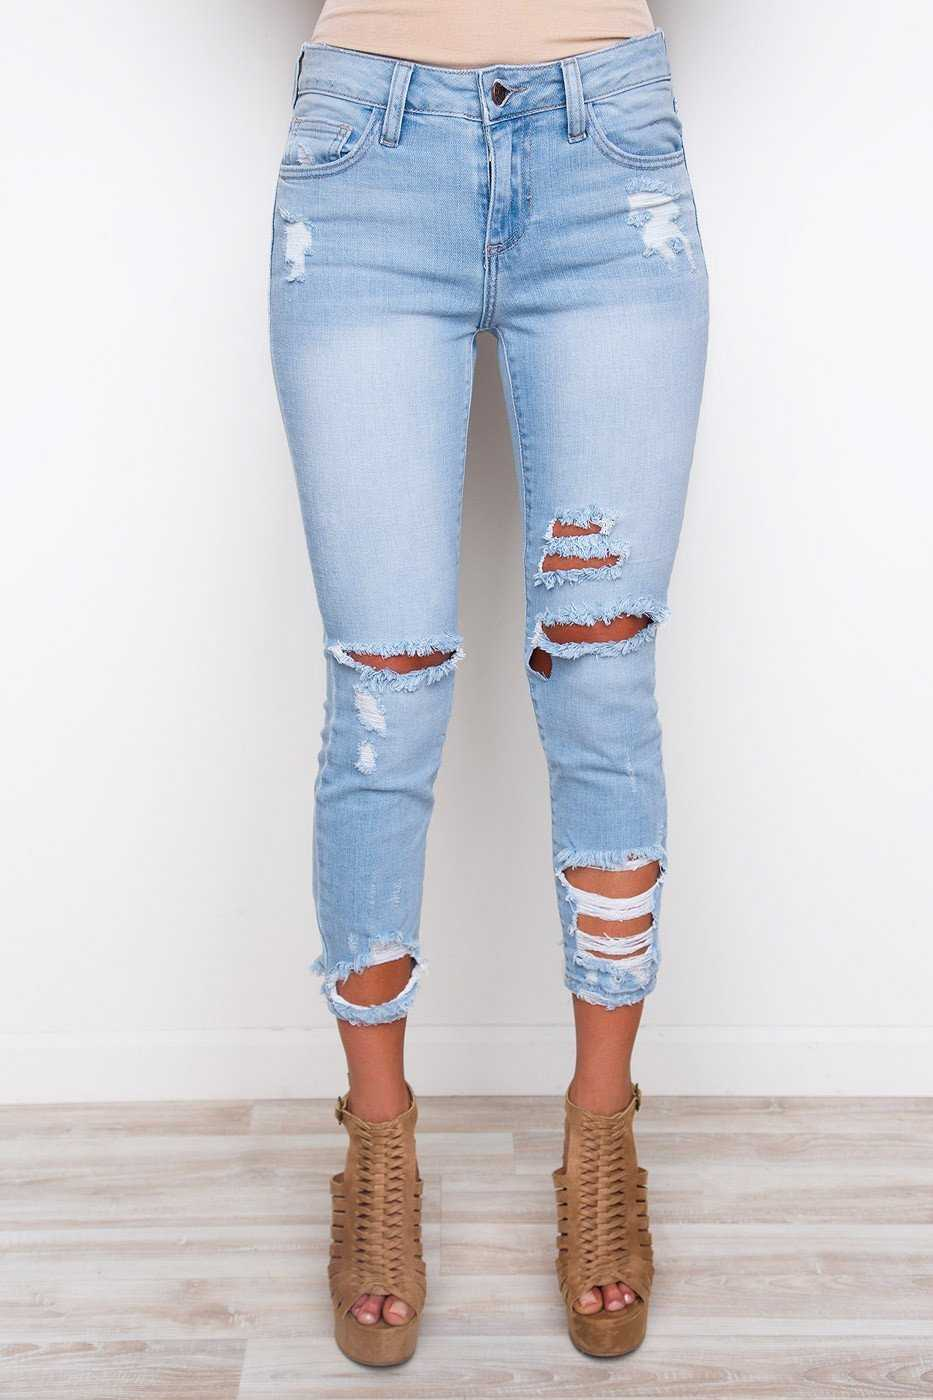 Pants - Can't Help It Distressed Jeans - Light